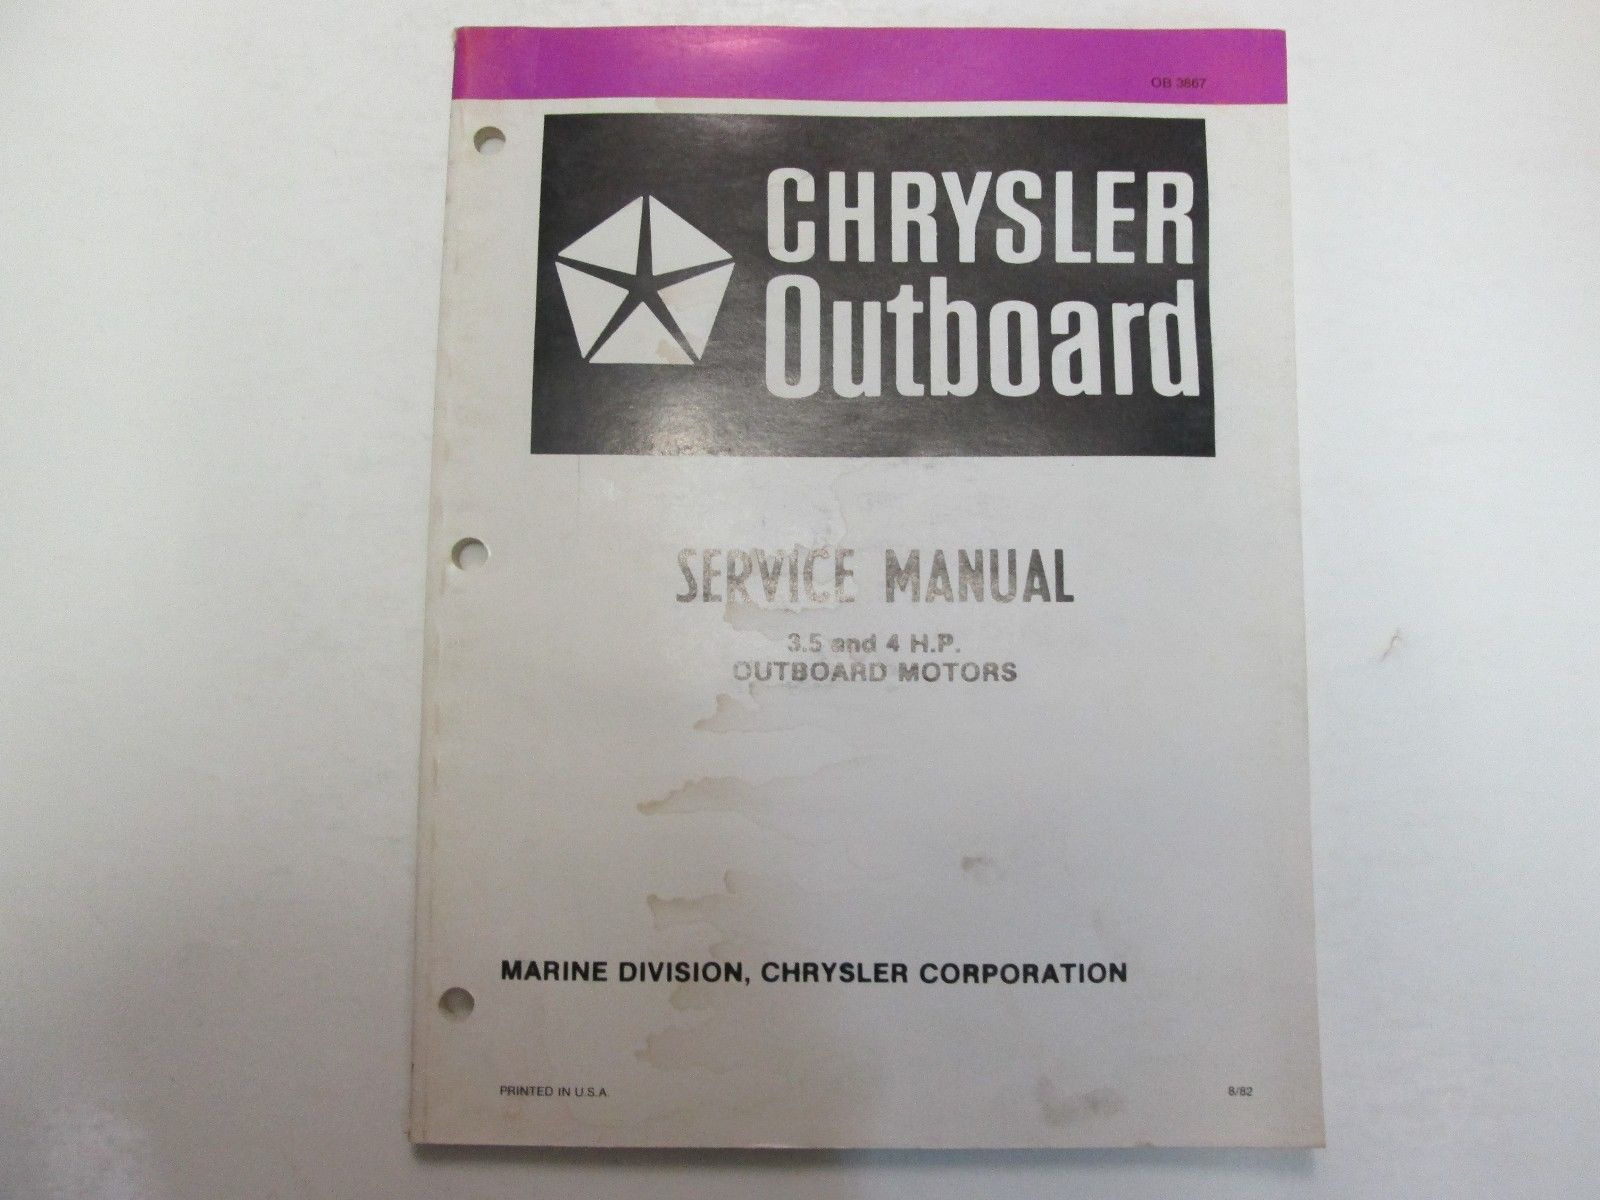 1983 chrysler outboard 3 5 4 hp outboard and 50 similar items rh bonanza com Chrysler Outboard Part Numbers 1972 Chrysler 6Hp Outboard Motor